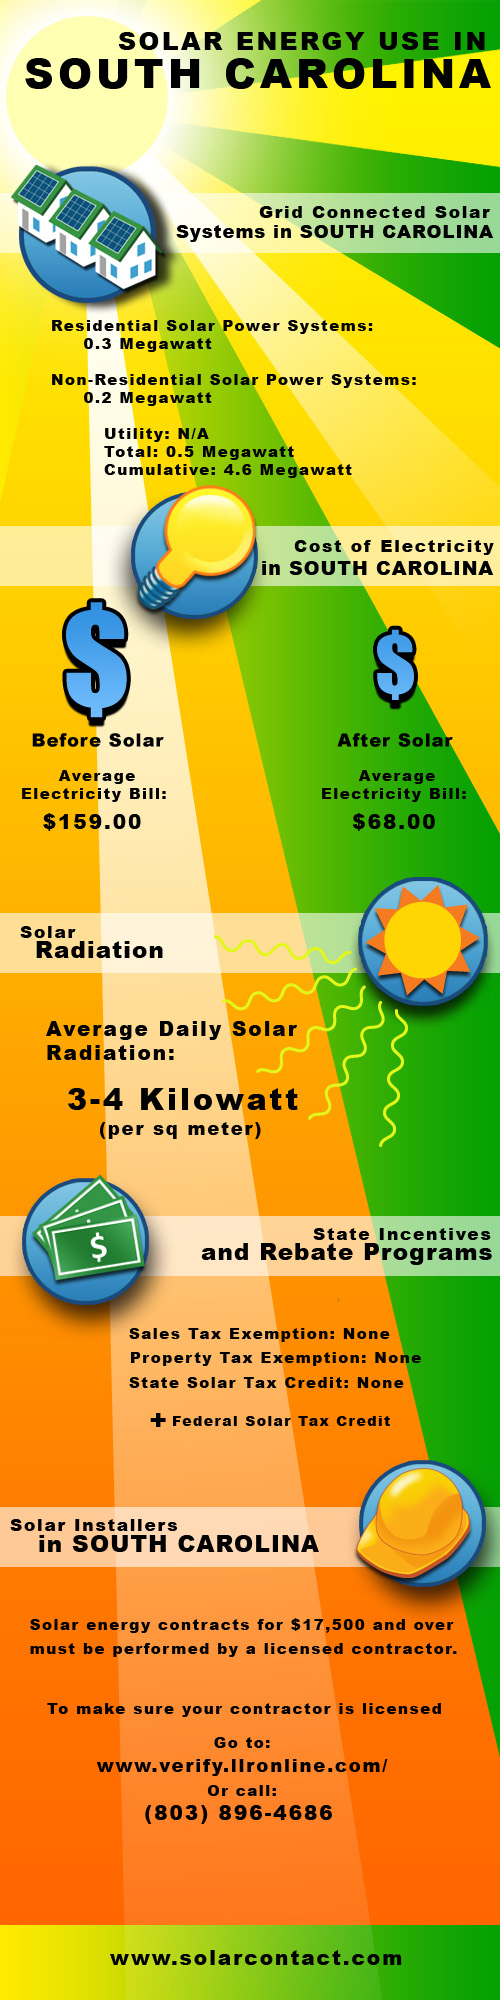 Fact Sheet Solar Energy Use in South Carolina